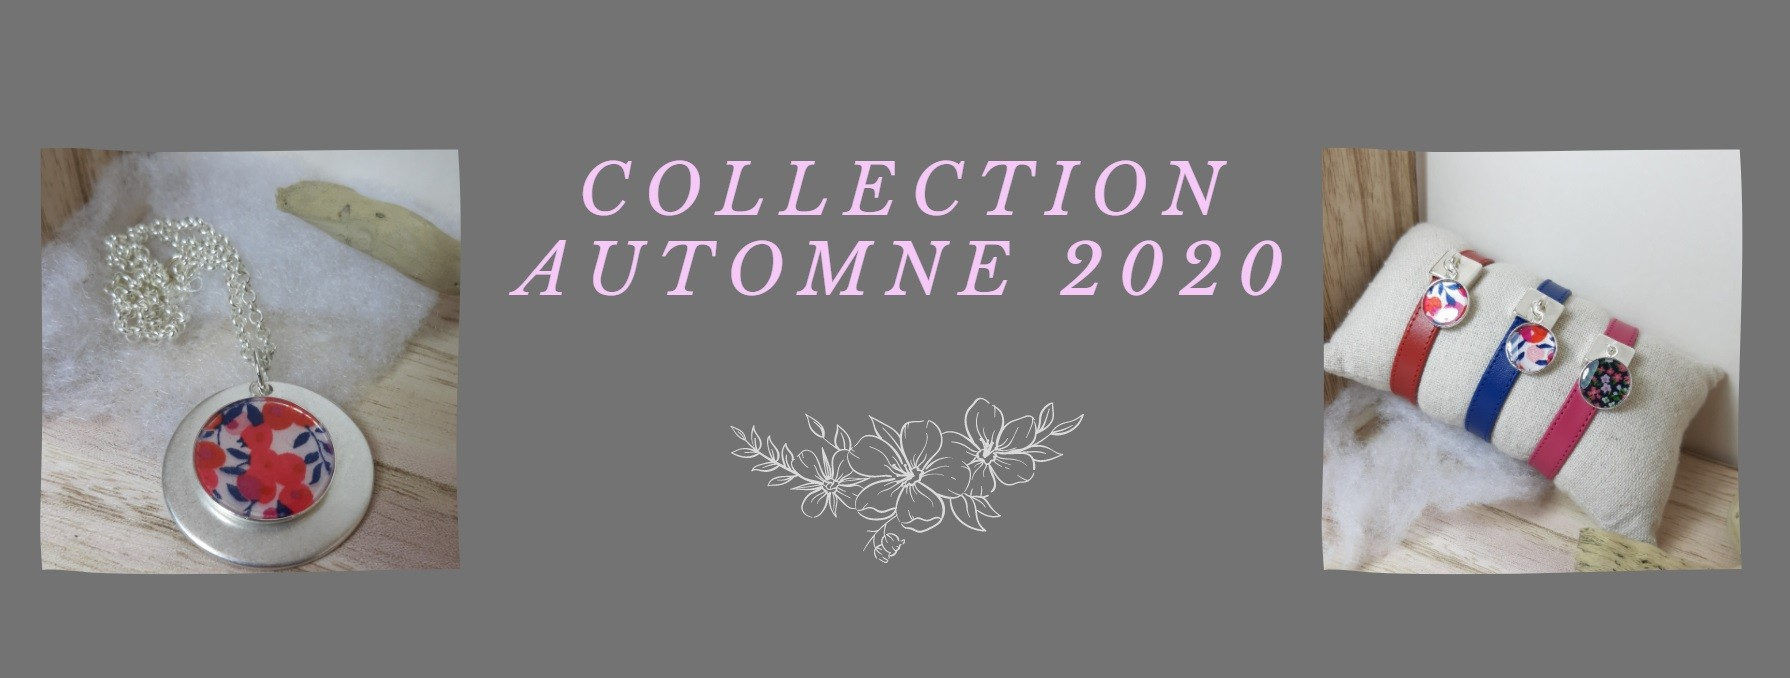 collection automne 2020